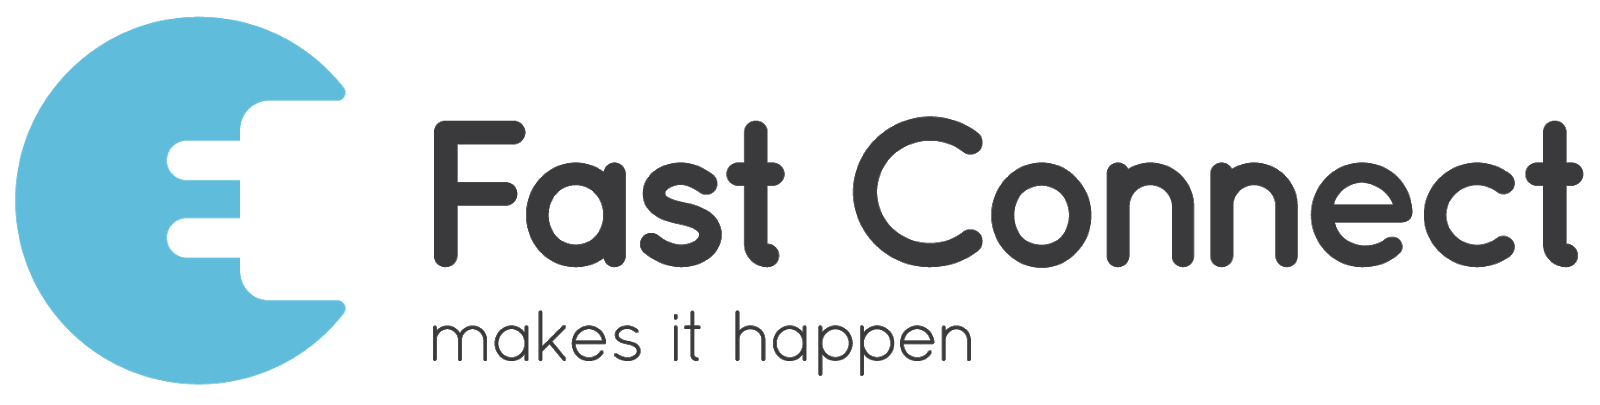 Fast connect logo